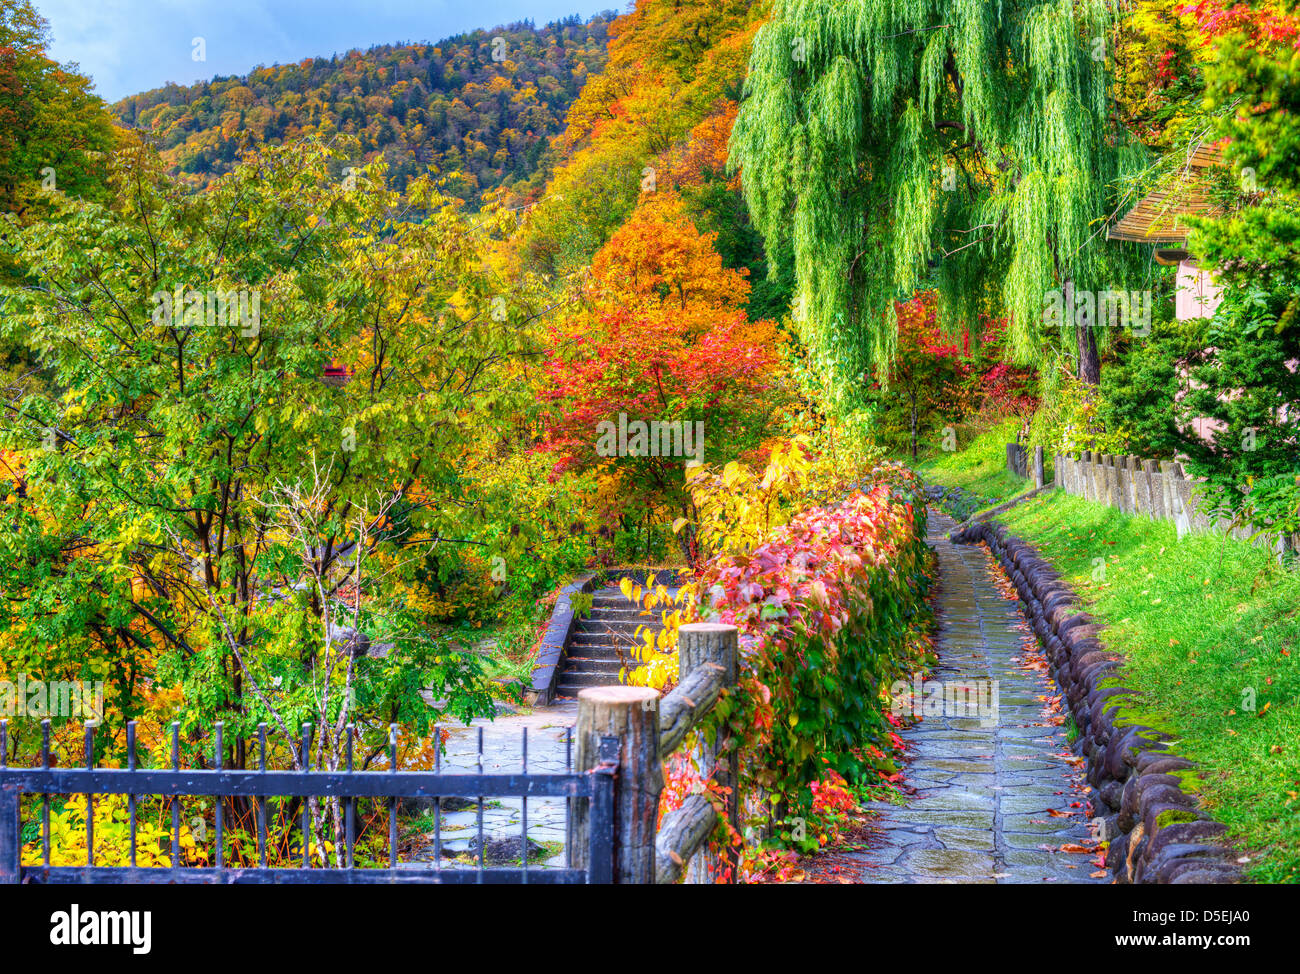 seasonal fall foliage in Jozankei, Japan. - Stock Image